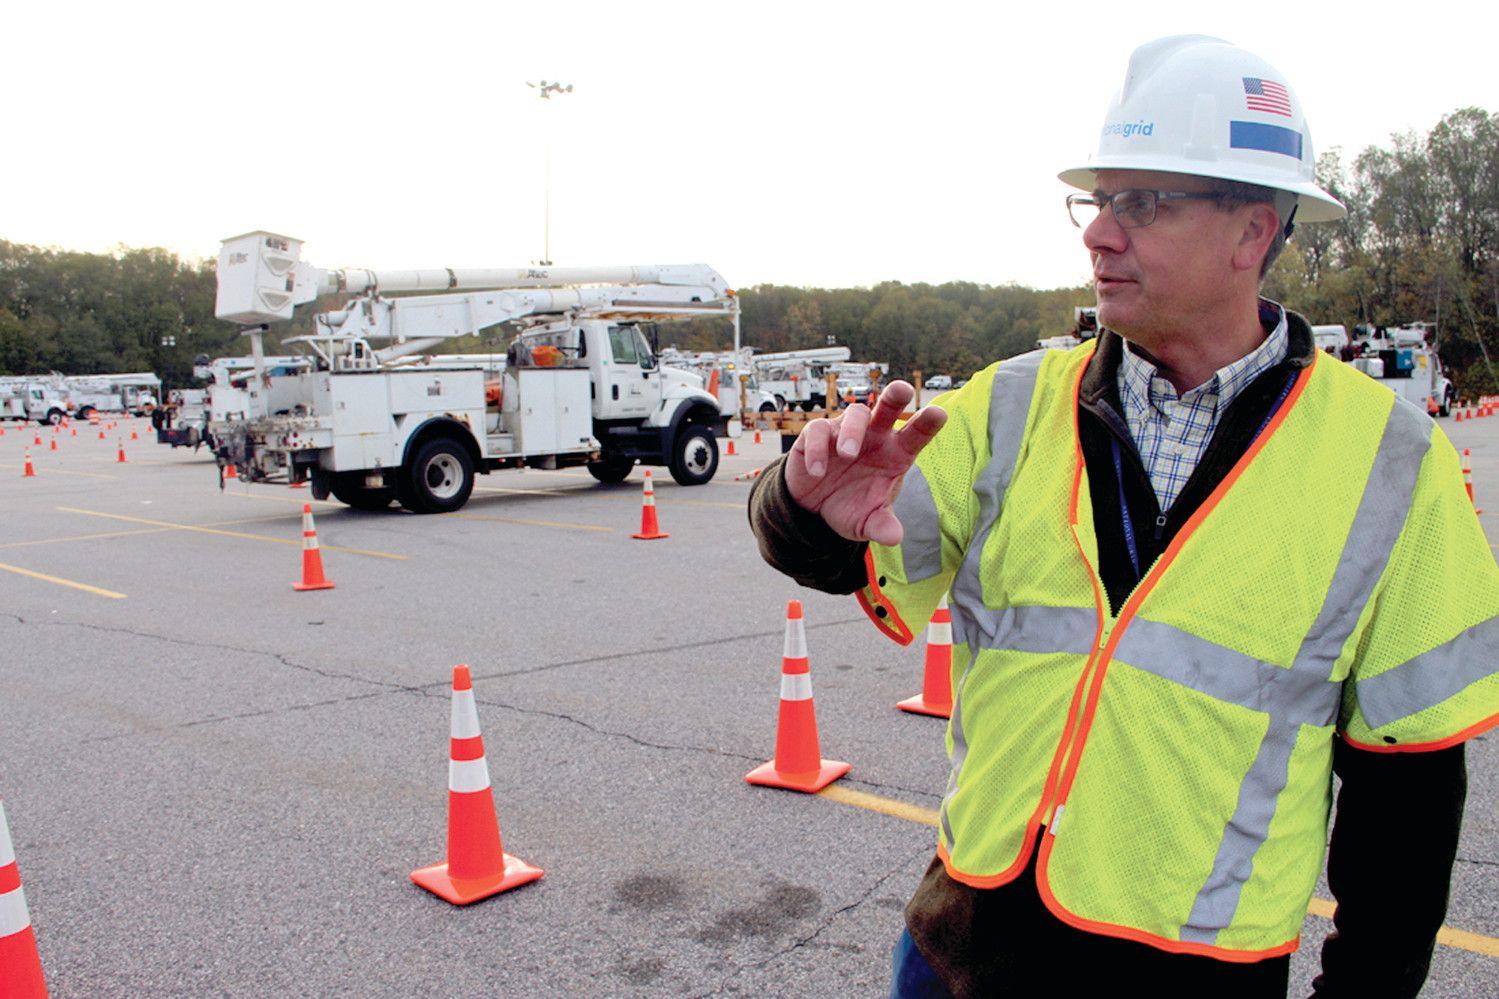 STAGED AND DEPLOYED: Gary Lataille, a member of National Grid's emergency planning, at the staging area for out-of-state crews at CCRI in Warwick Wednesday, where they were deployed to restore power throughout the state.